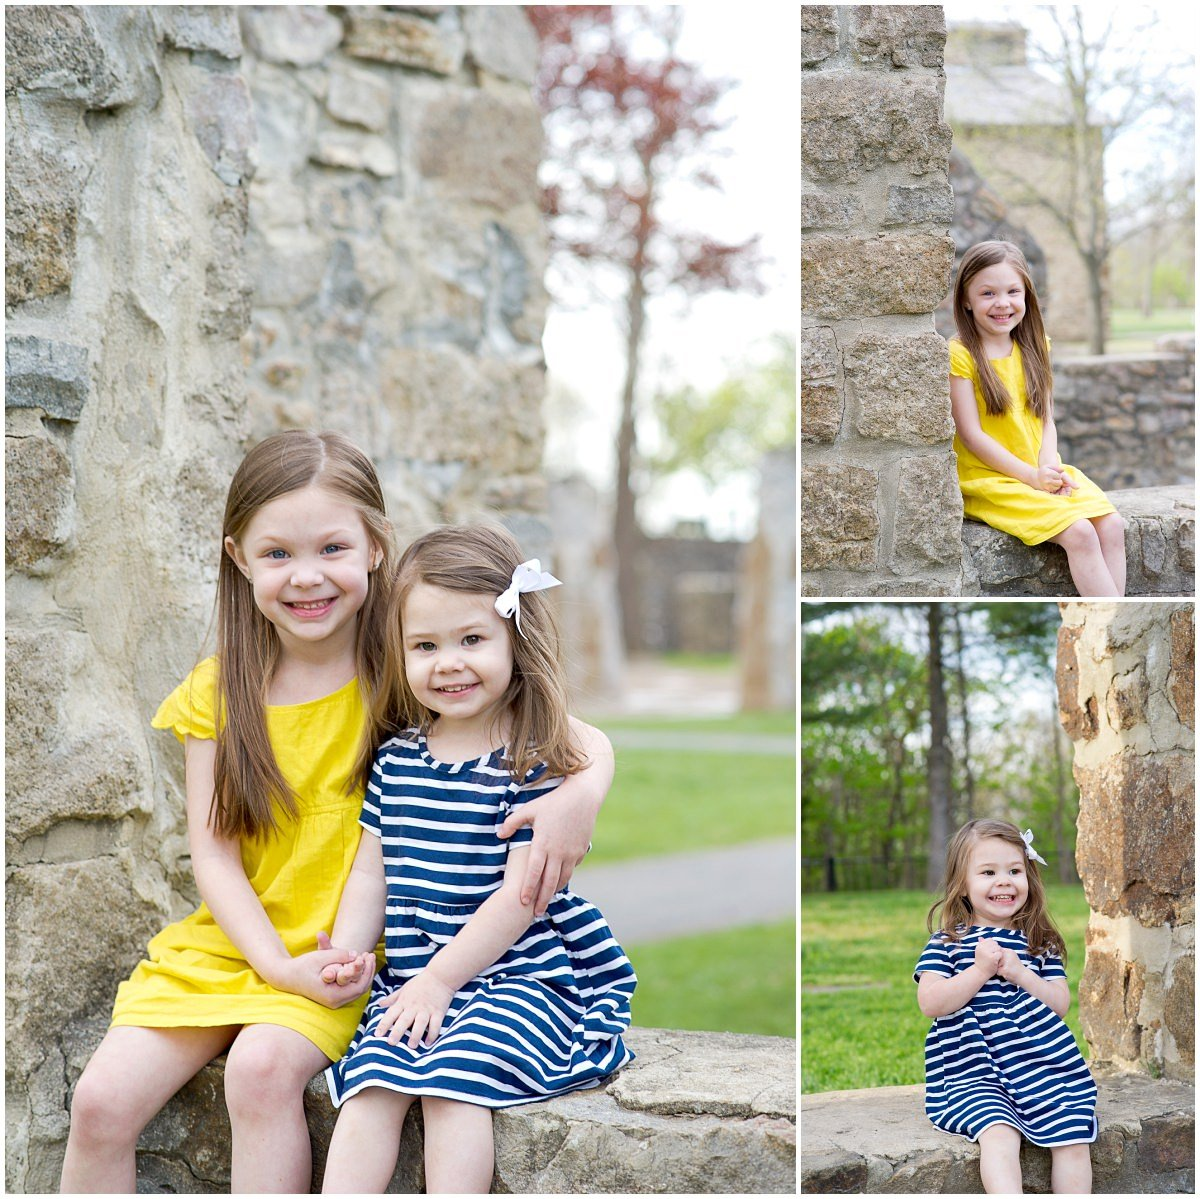 Lockridge Furnace Sisters Photo Session | K. Moss Photography